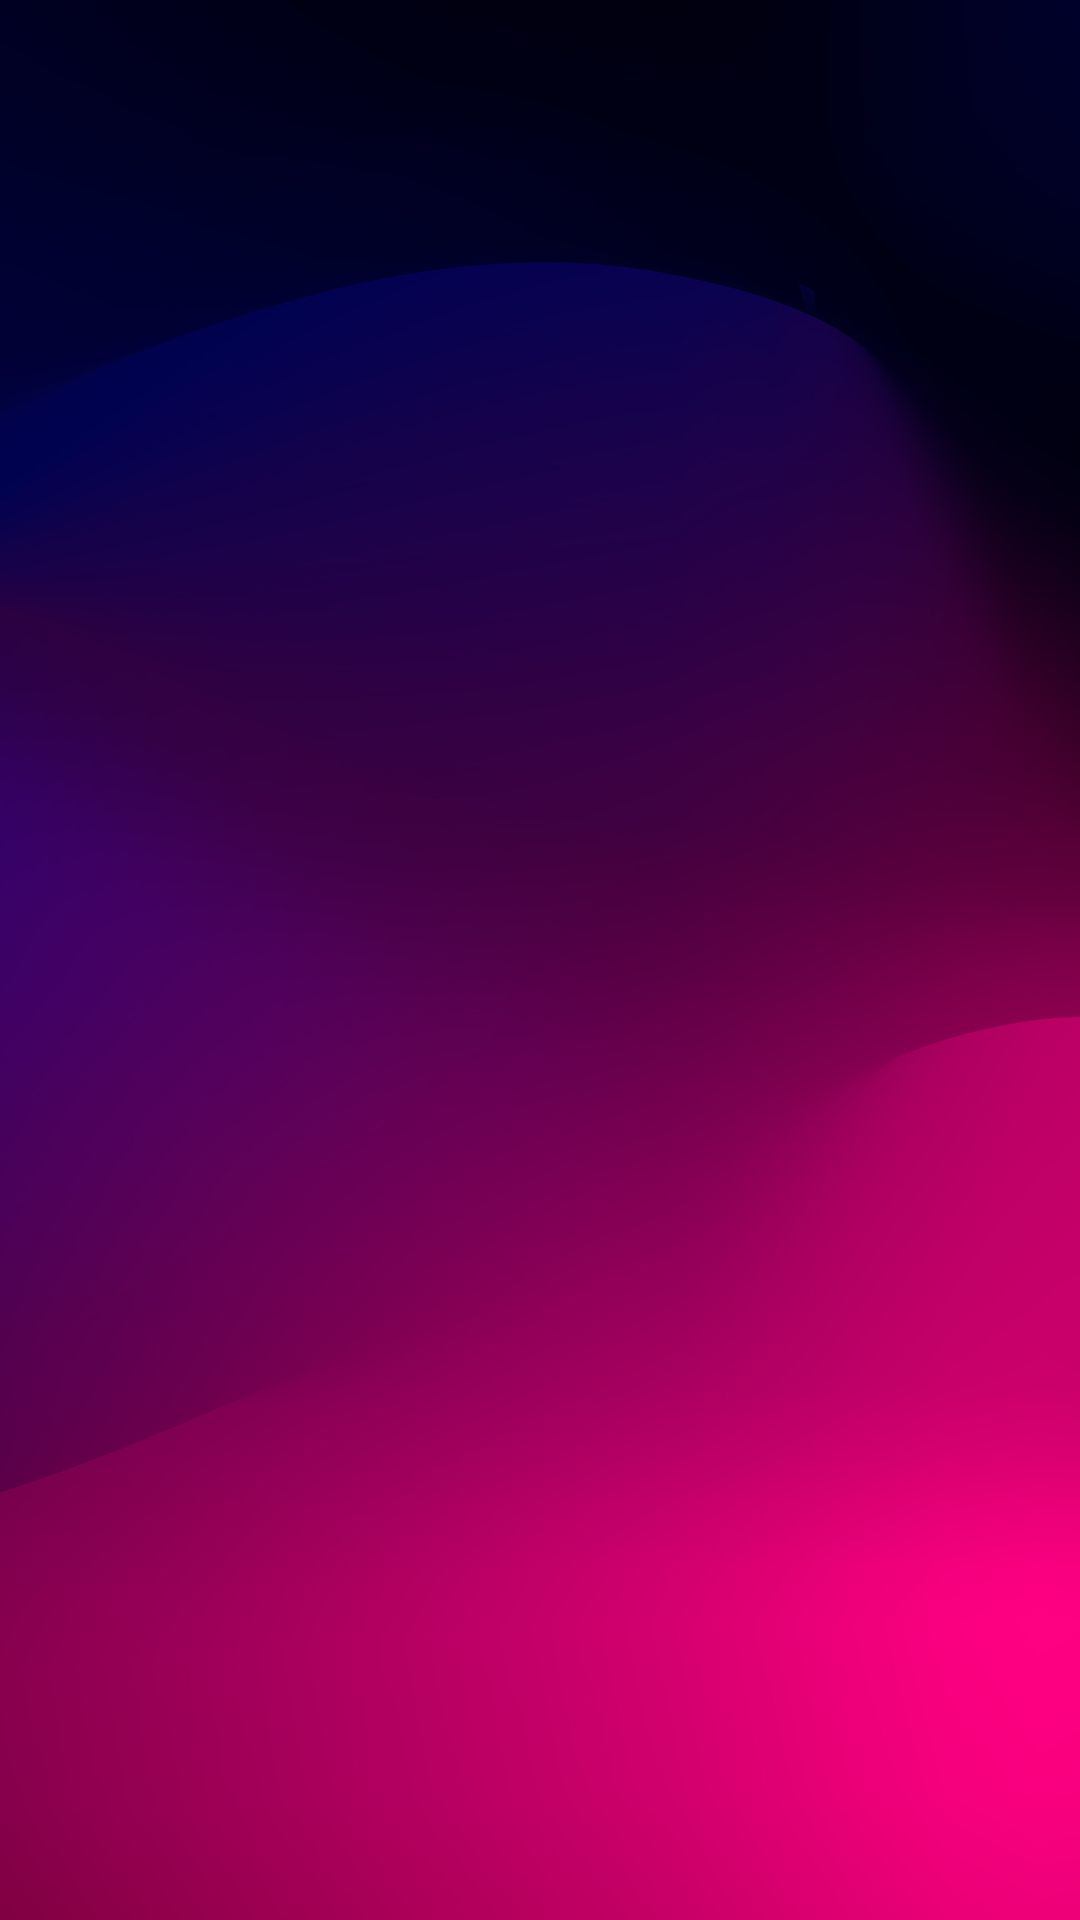 Apple Wwdc 2016 Hd Wallpaper For Iphone 5 5s Screens Iphone Wallpaper Apple Wallpaper Simple Iphone Wallpaper